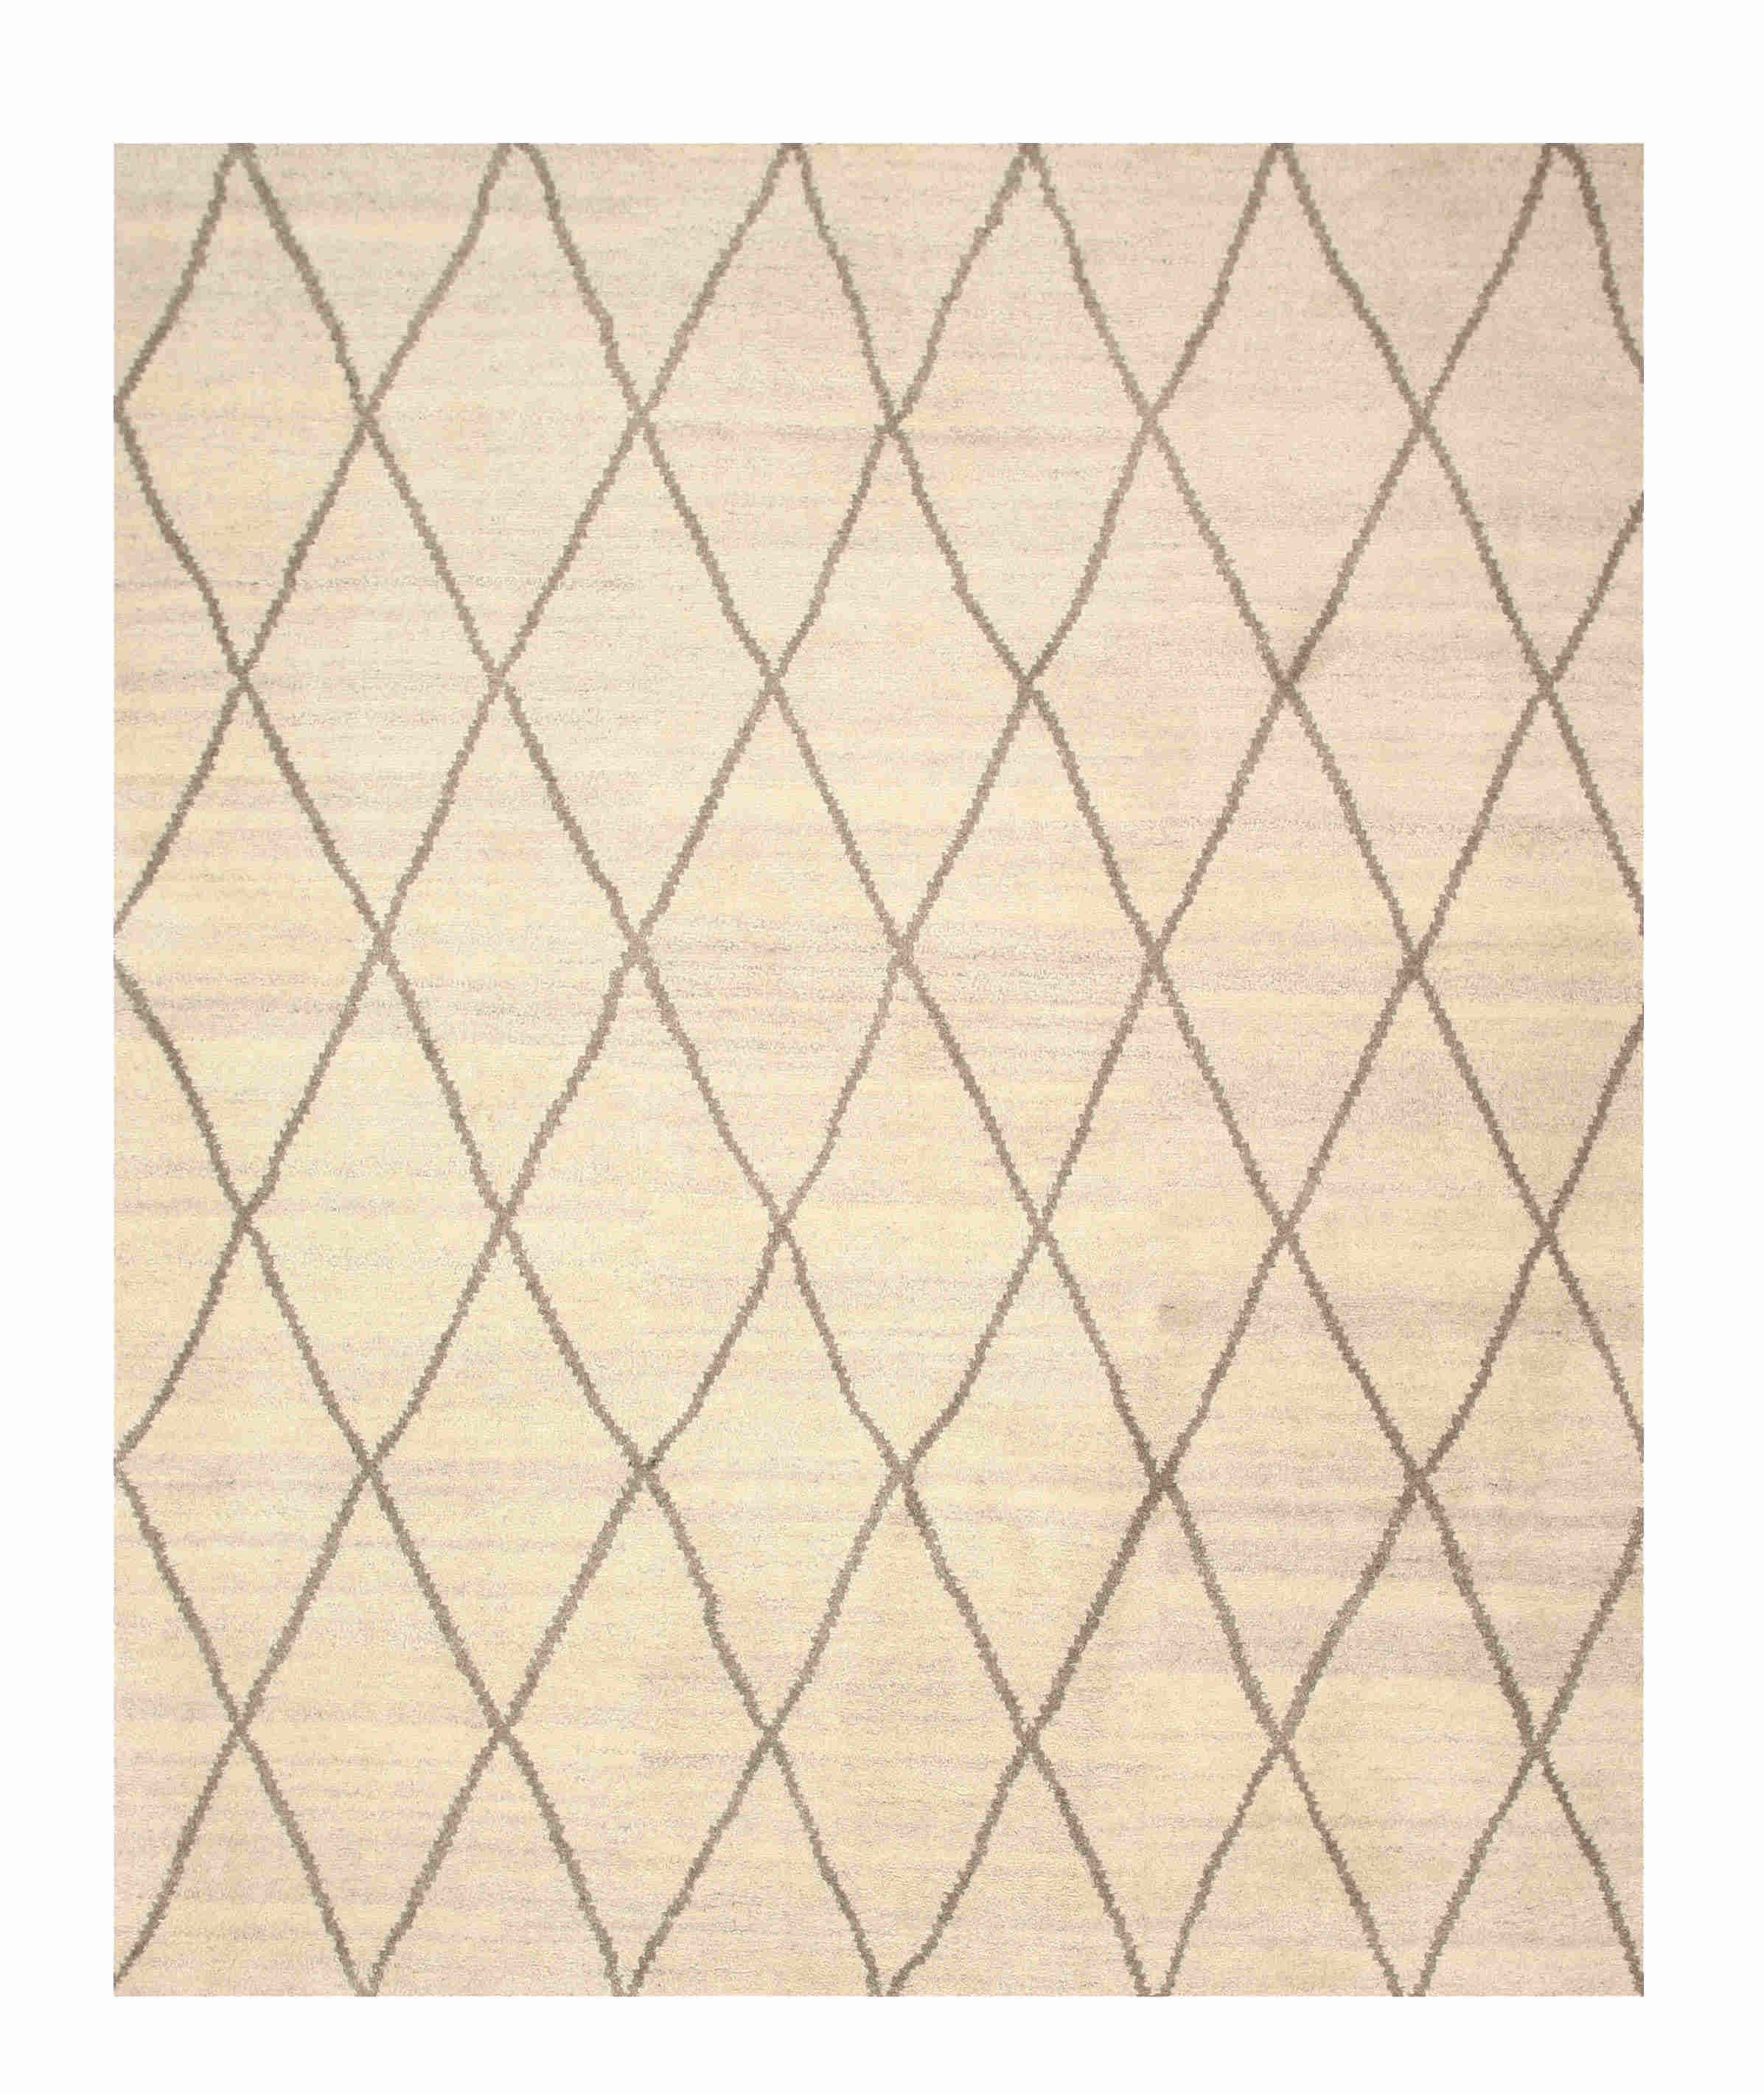 EORC Sht22Iv Ivory Hand Knotted Wool Trellis Moroccan Rug